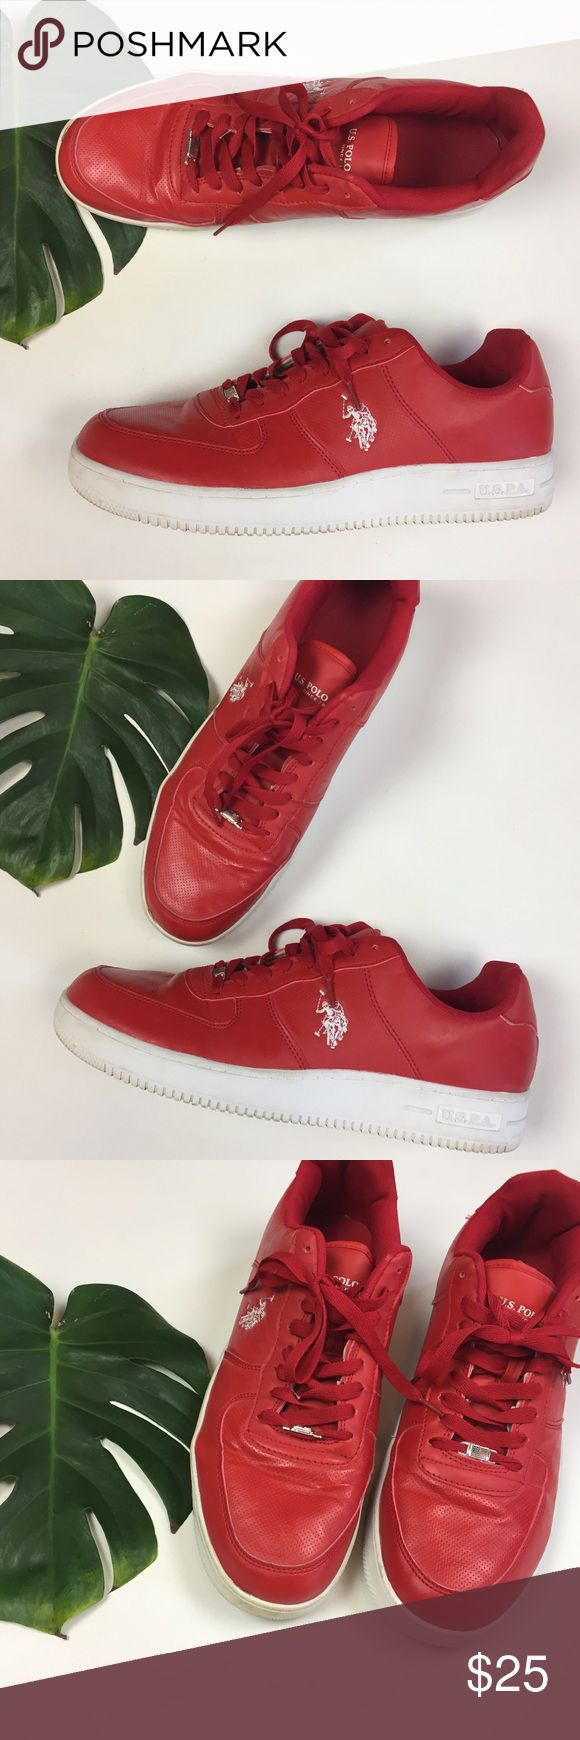 U.S. Polo Assn. 🏇🏼 mens sz 13 red synth leather U.S. Polo Assn. 🏇🏼 mens size 13 red synthetic leather, very good used condition. urban streetwear cool dope shoes U.S. Polo Assn. Shoes Sneakers